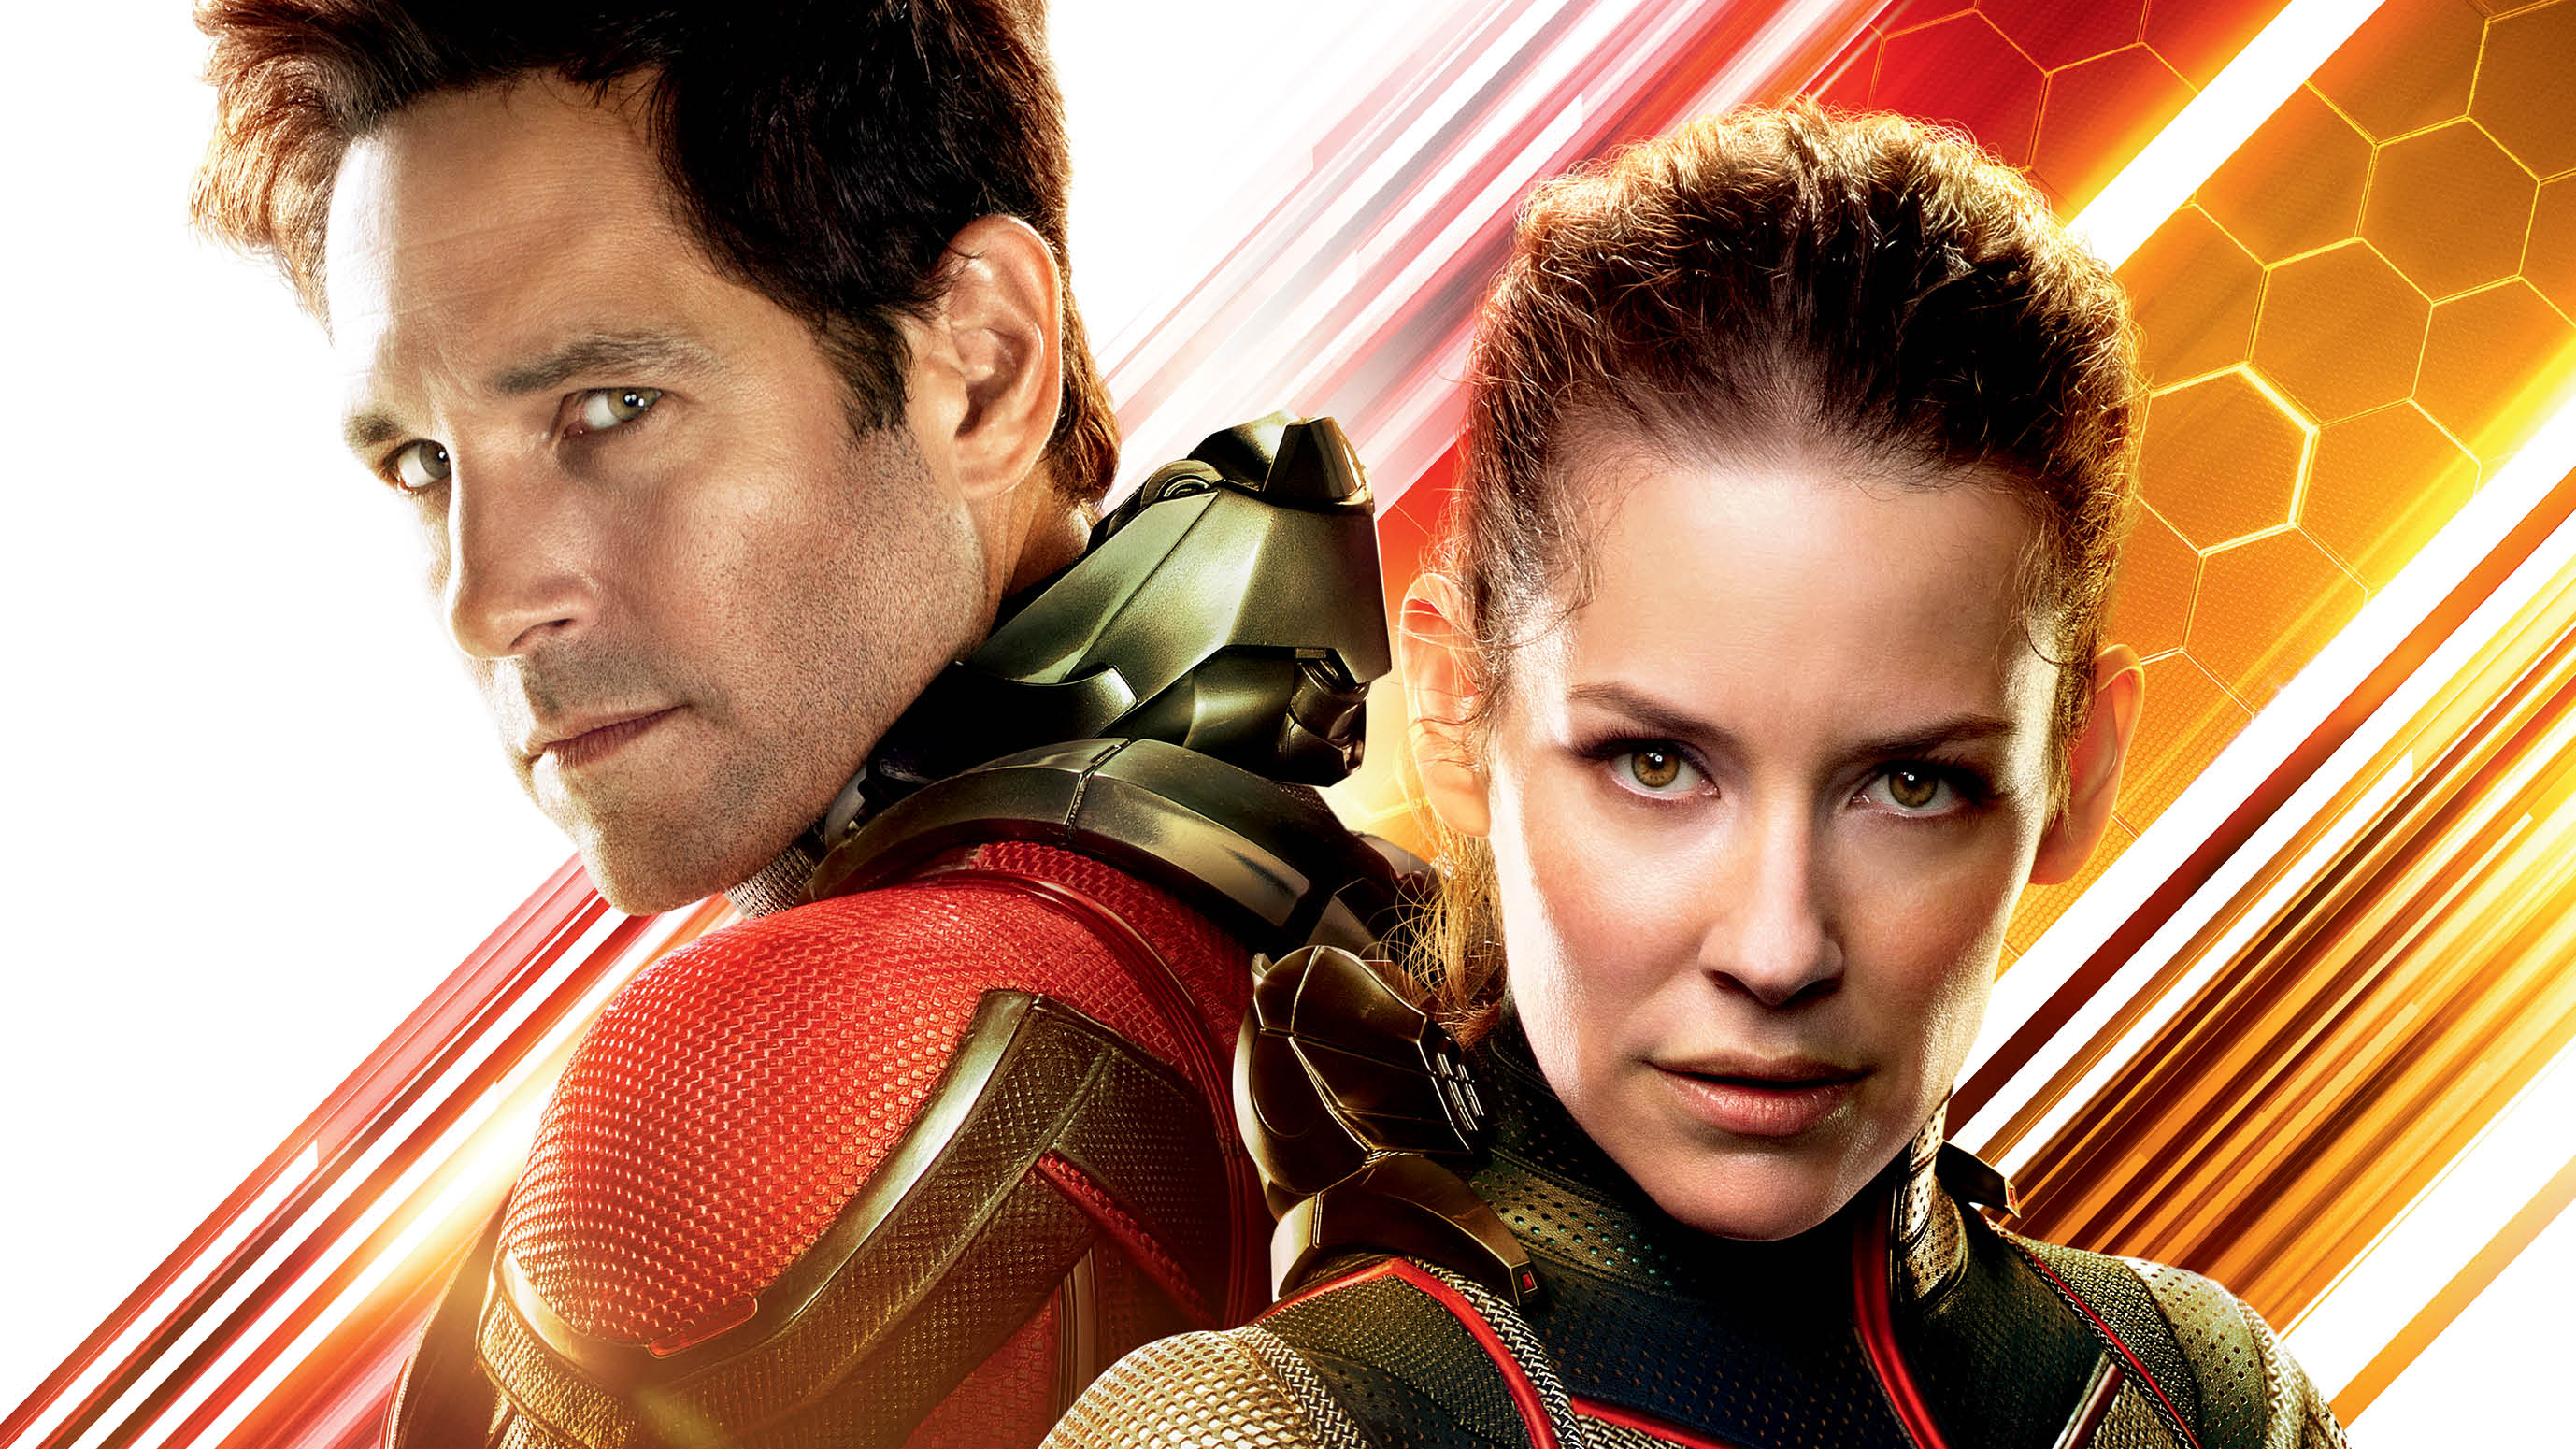 Ant Man And The Wasp Poster Hd Movies 4k Wallpapers Images